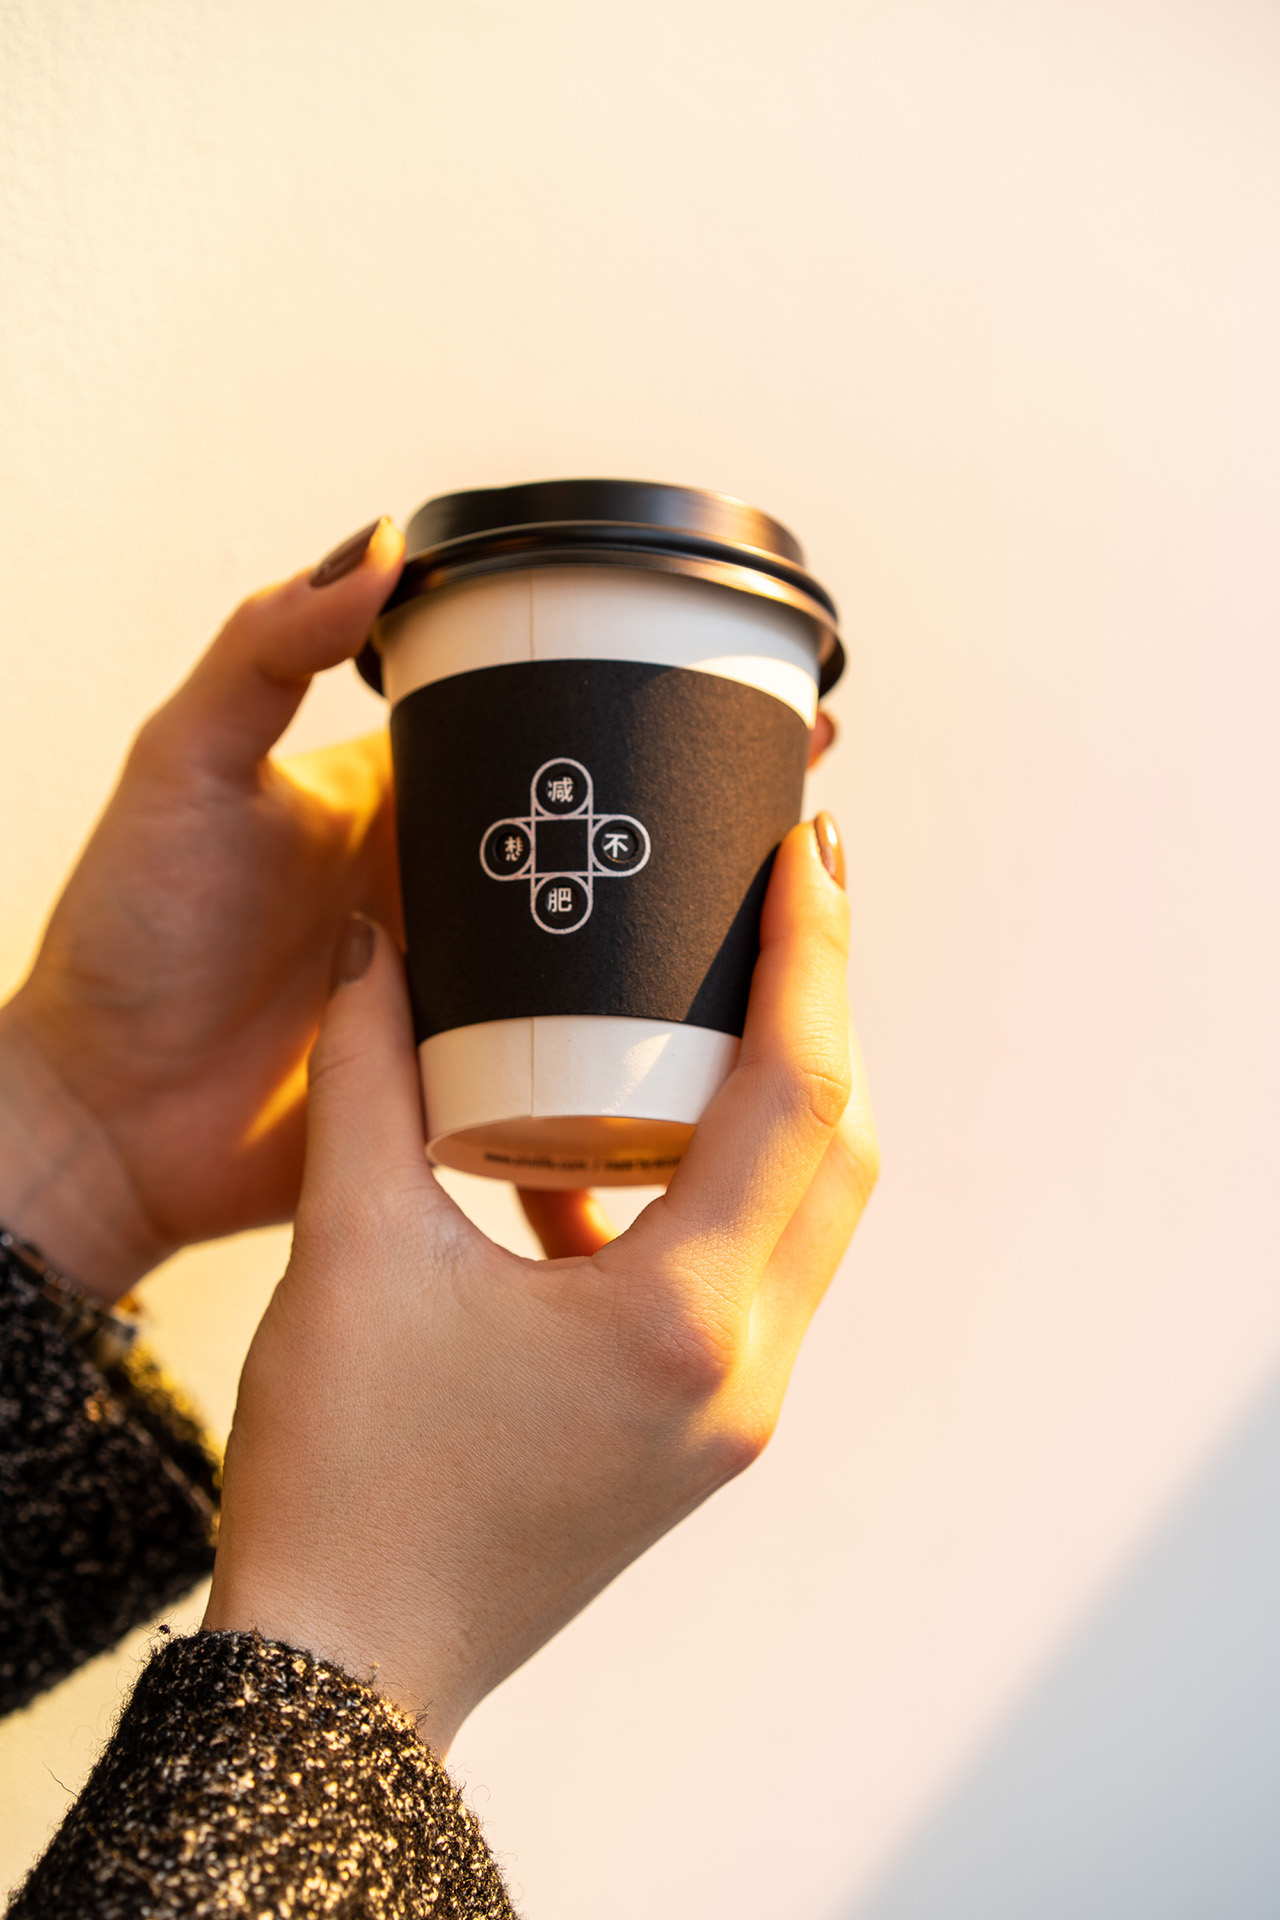 Rotate the cup sleeve to reveal different playful quotes.